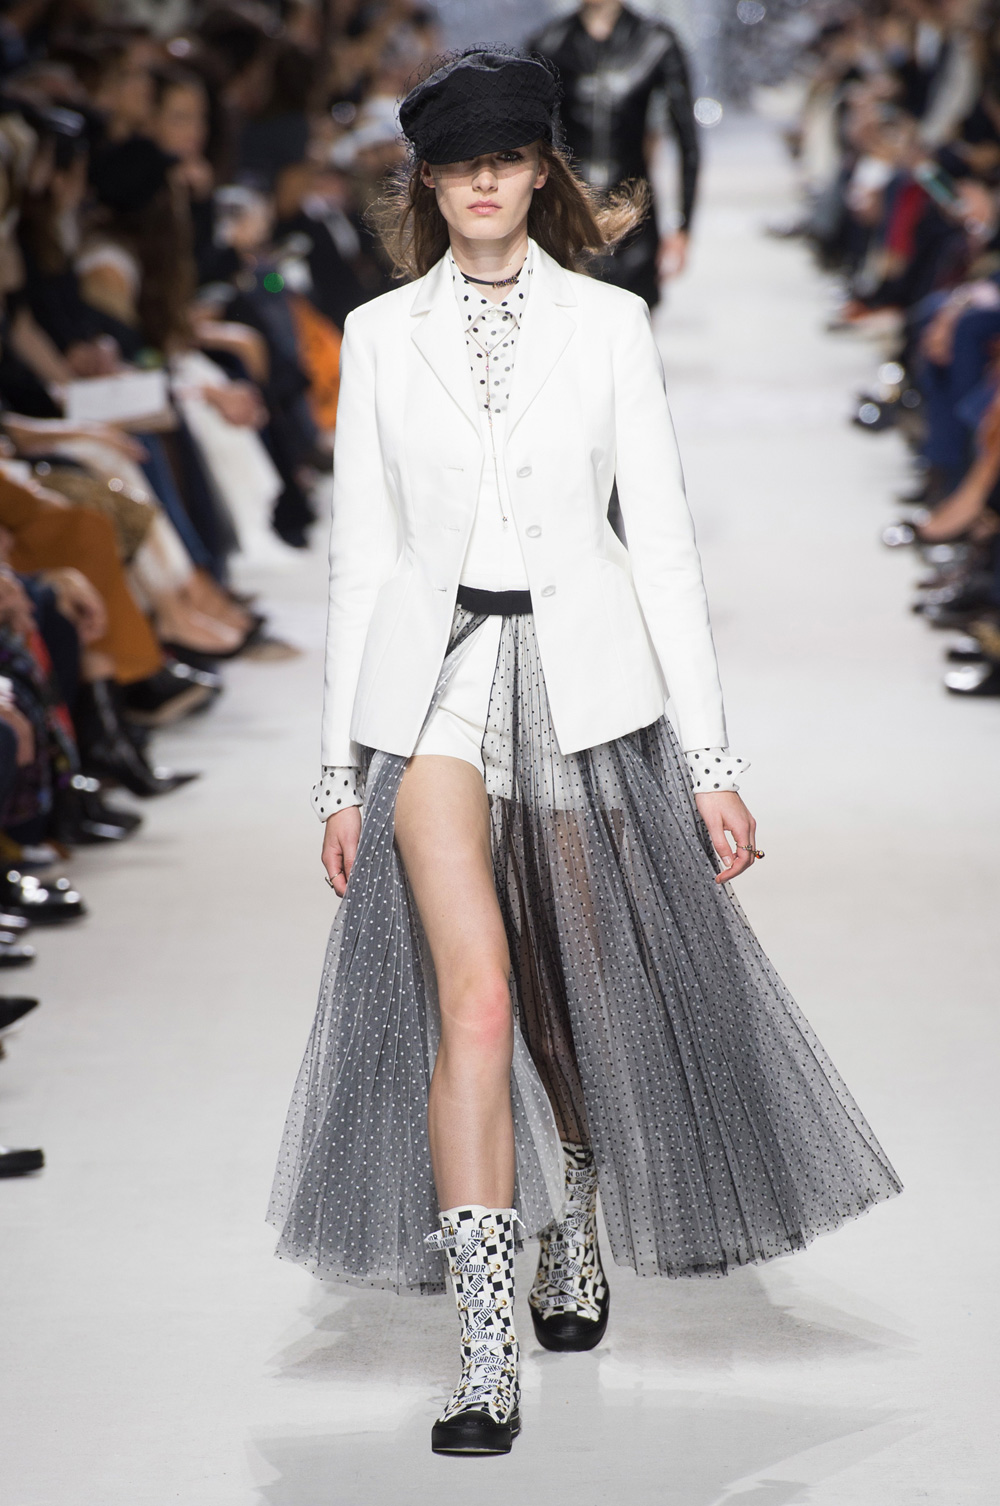 So Dior Runway Snaps From The Christian Dior Spring 2018 Fashion Show About Her